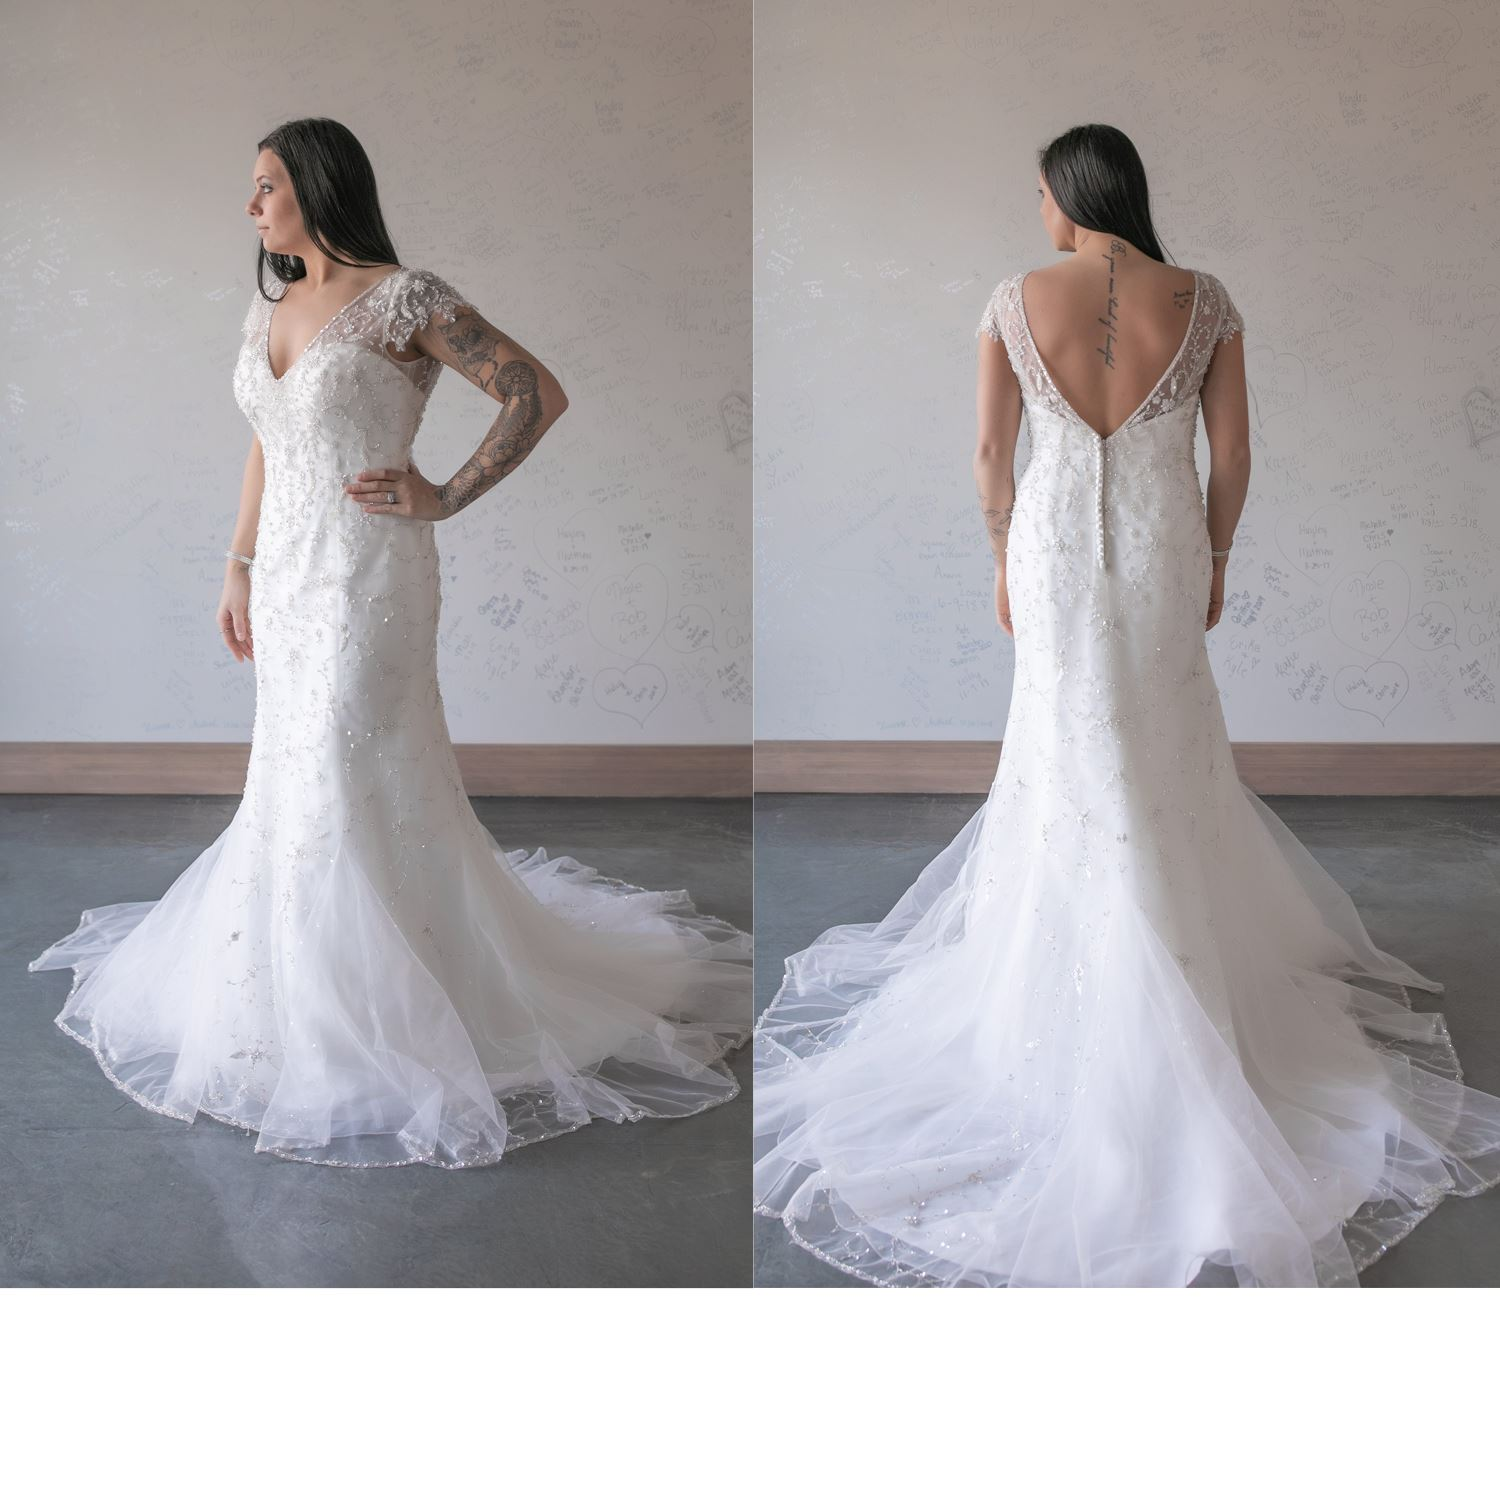 Lillian - Size 14 - Ivory/Silver Beading - Originally priced $1399 - Sample box price $749